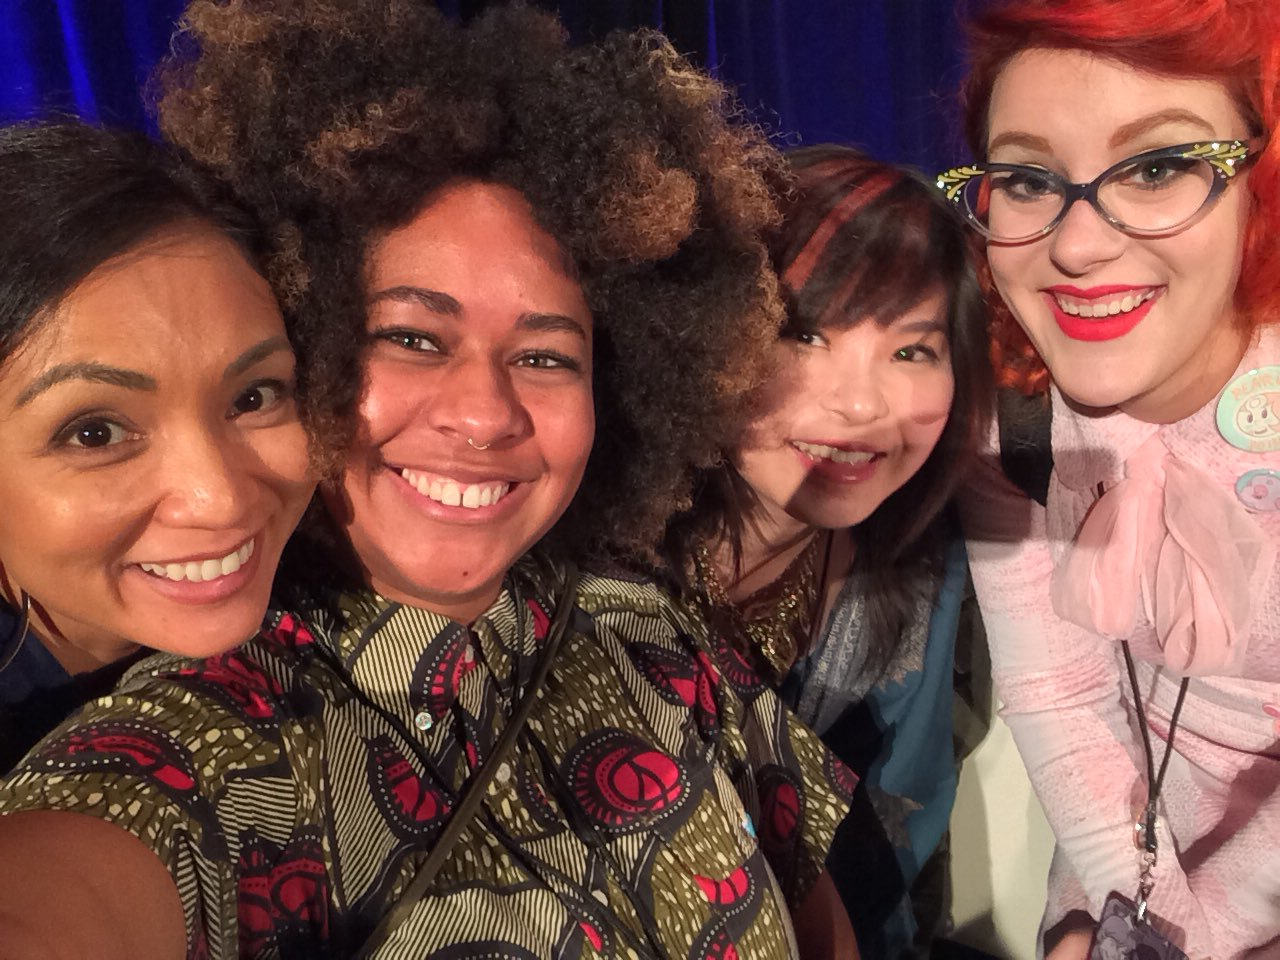 I feel so lucky to have shared a panel with this amazing group of talented ladies!